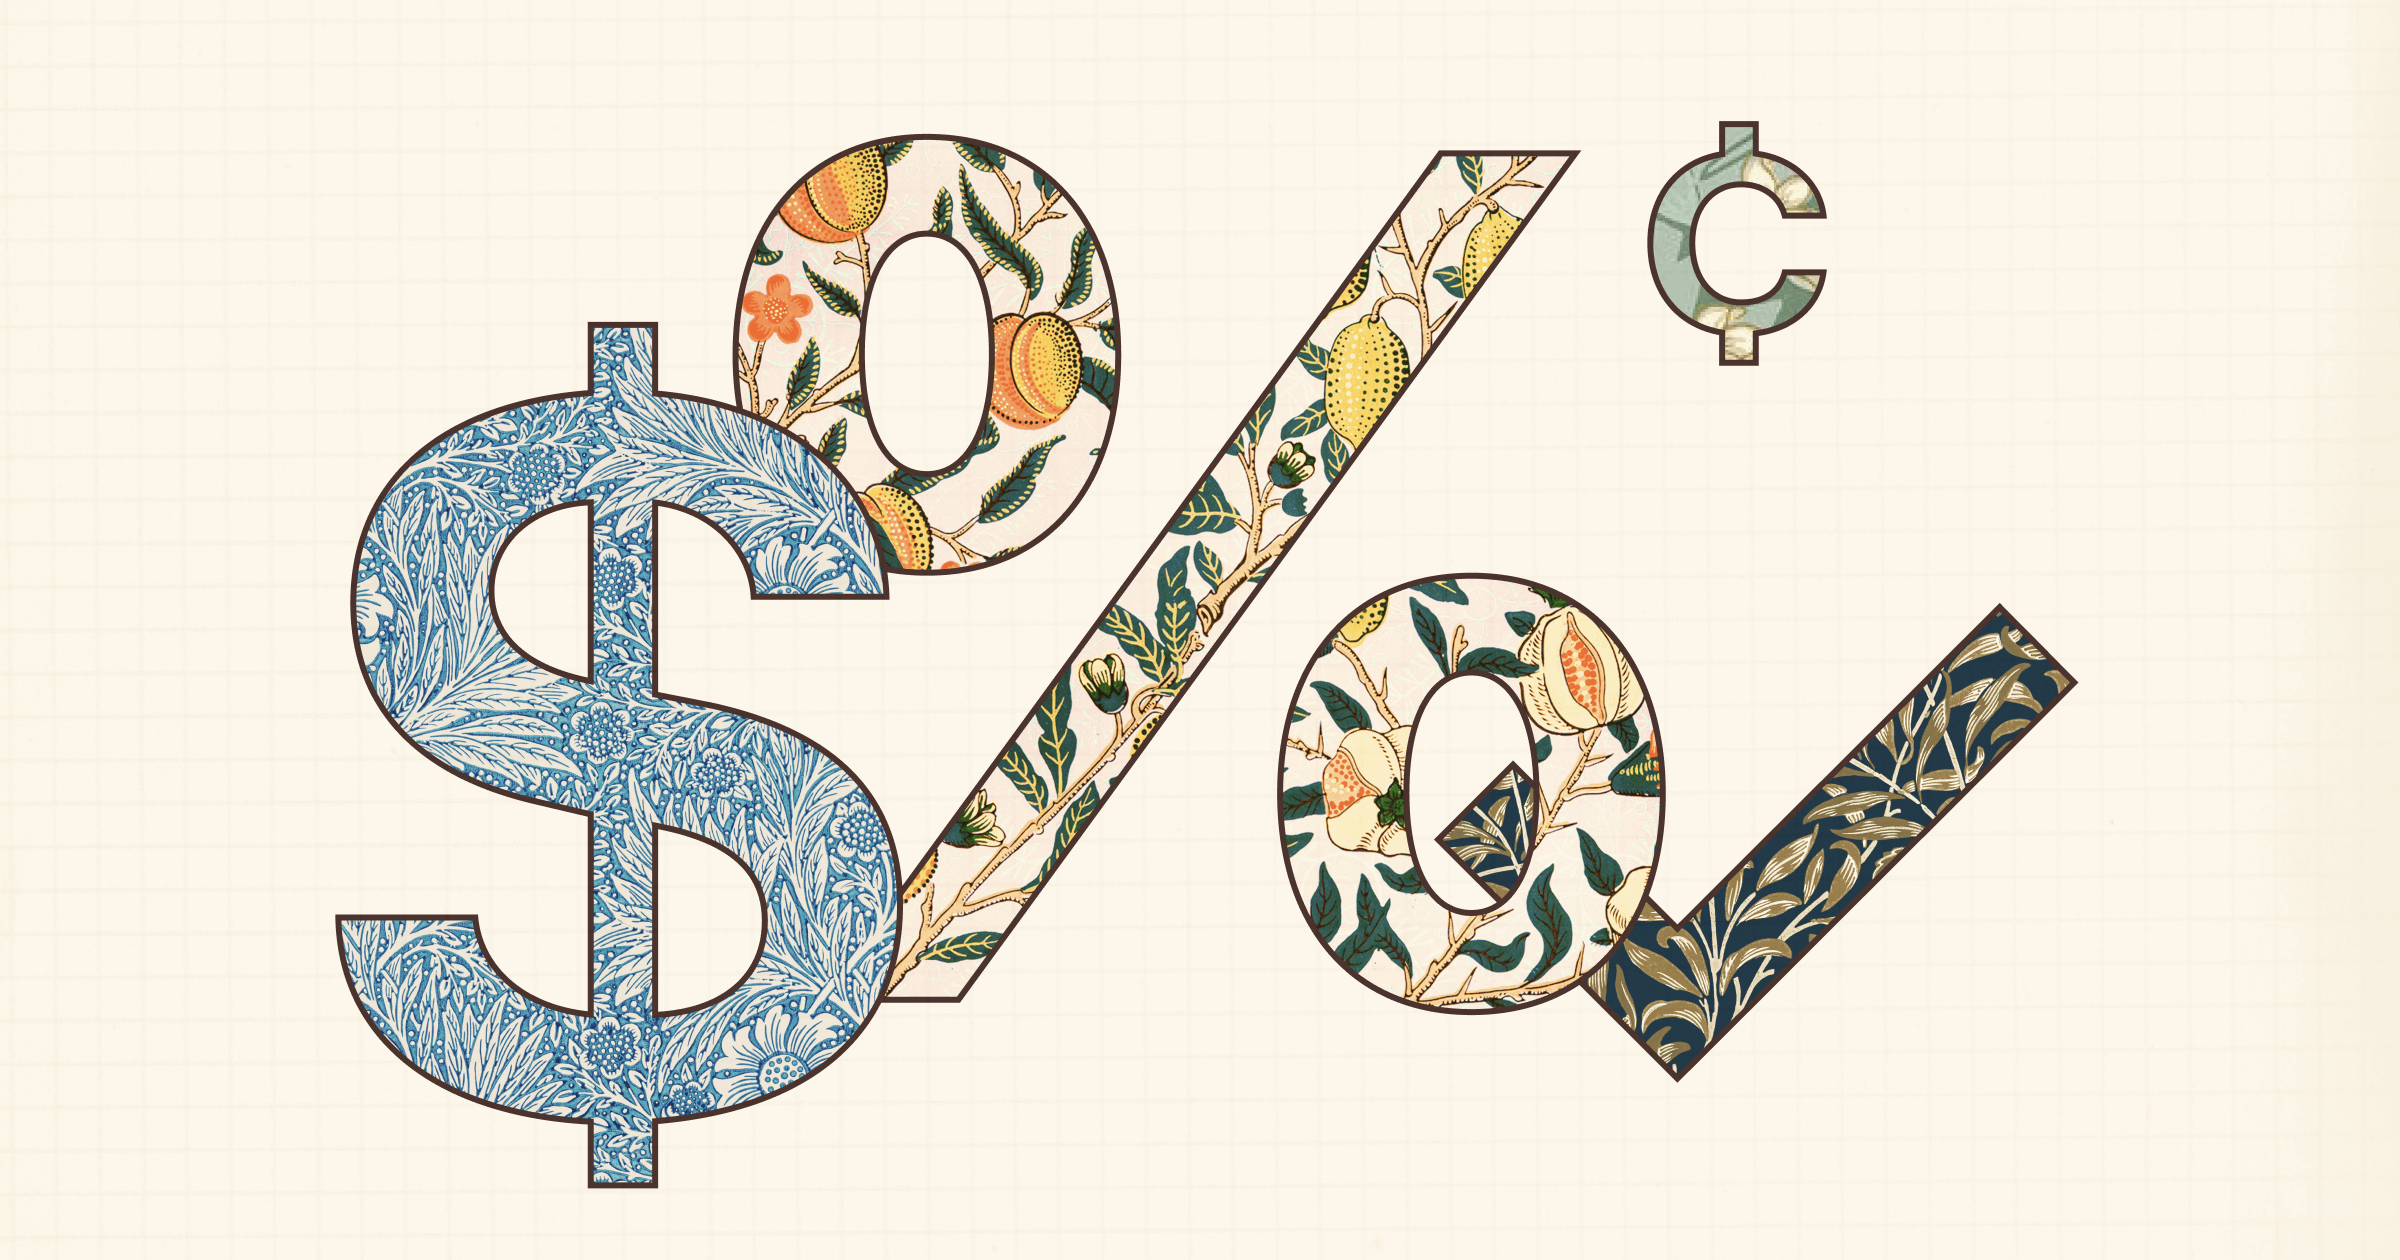 A dollar sign, percent sign, cent sign, and check mark, all filled in with a floral design.